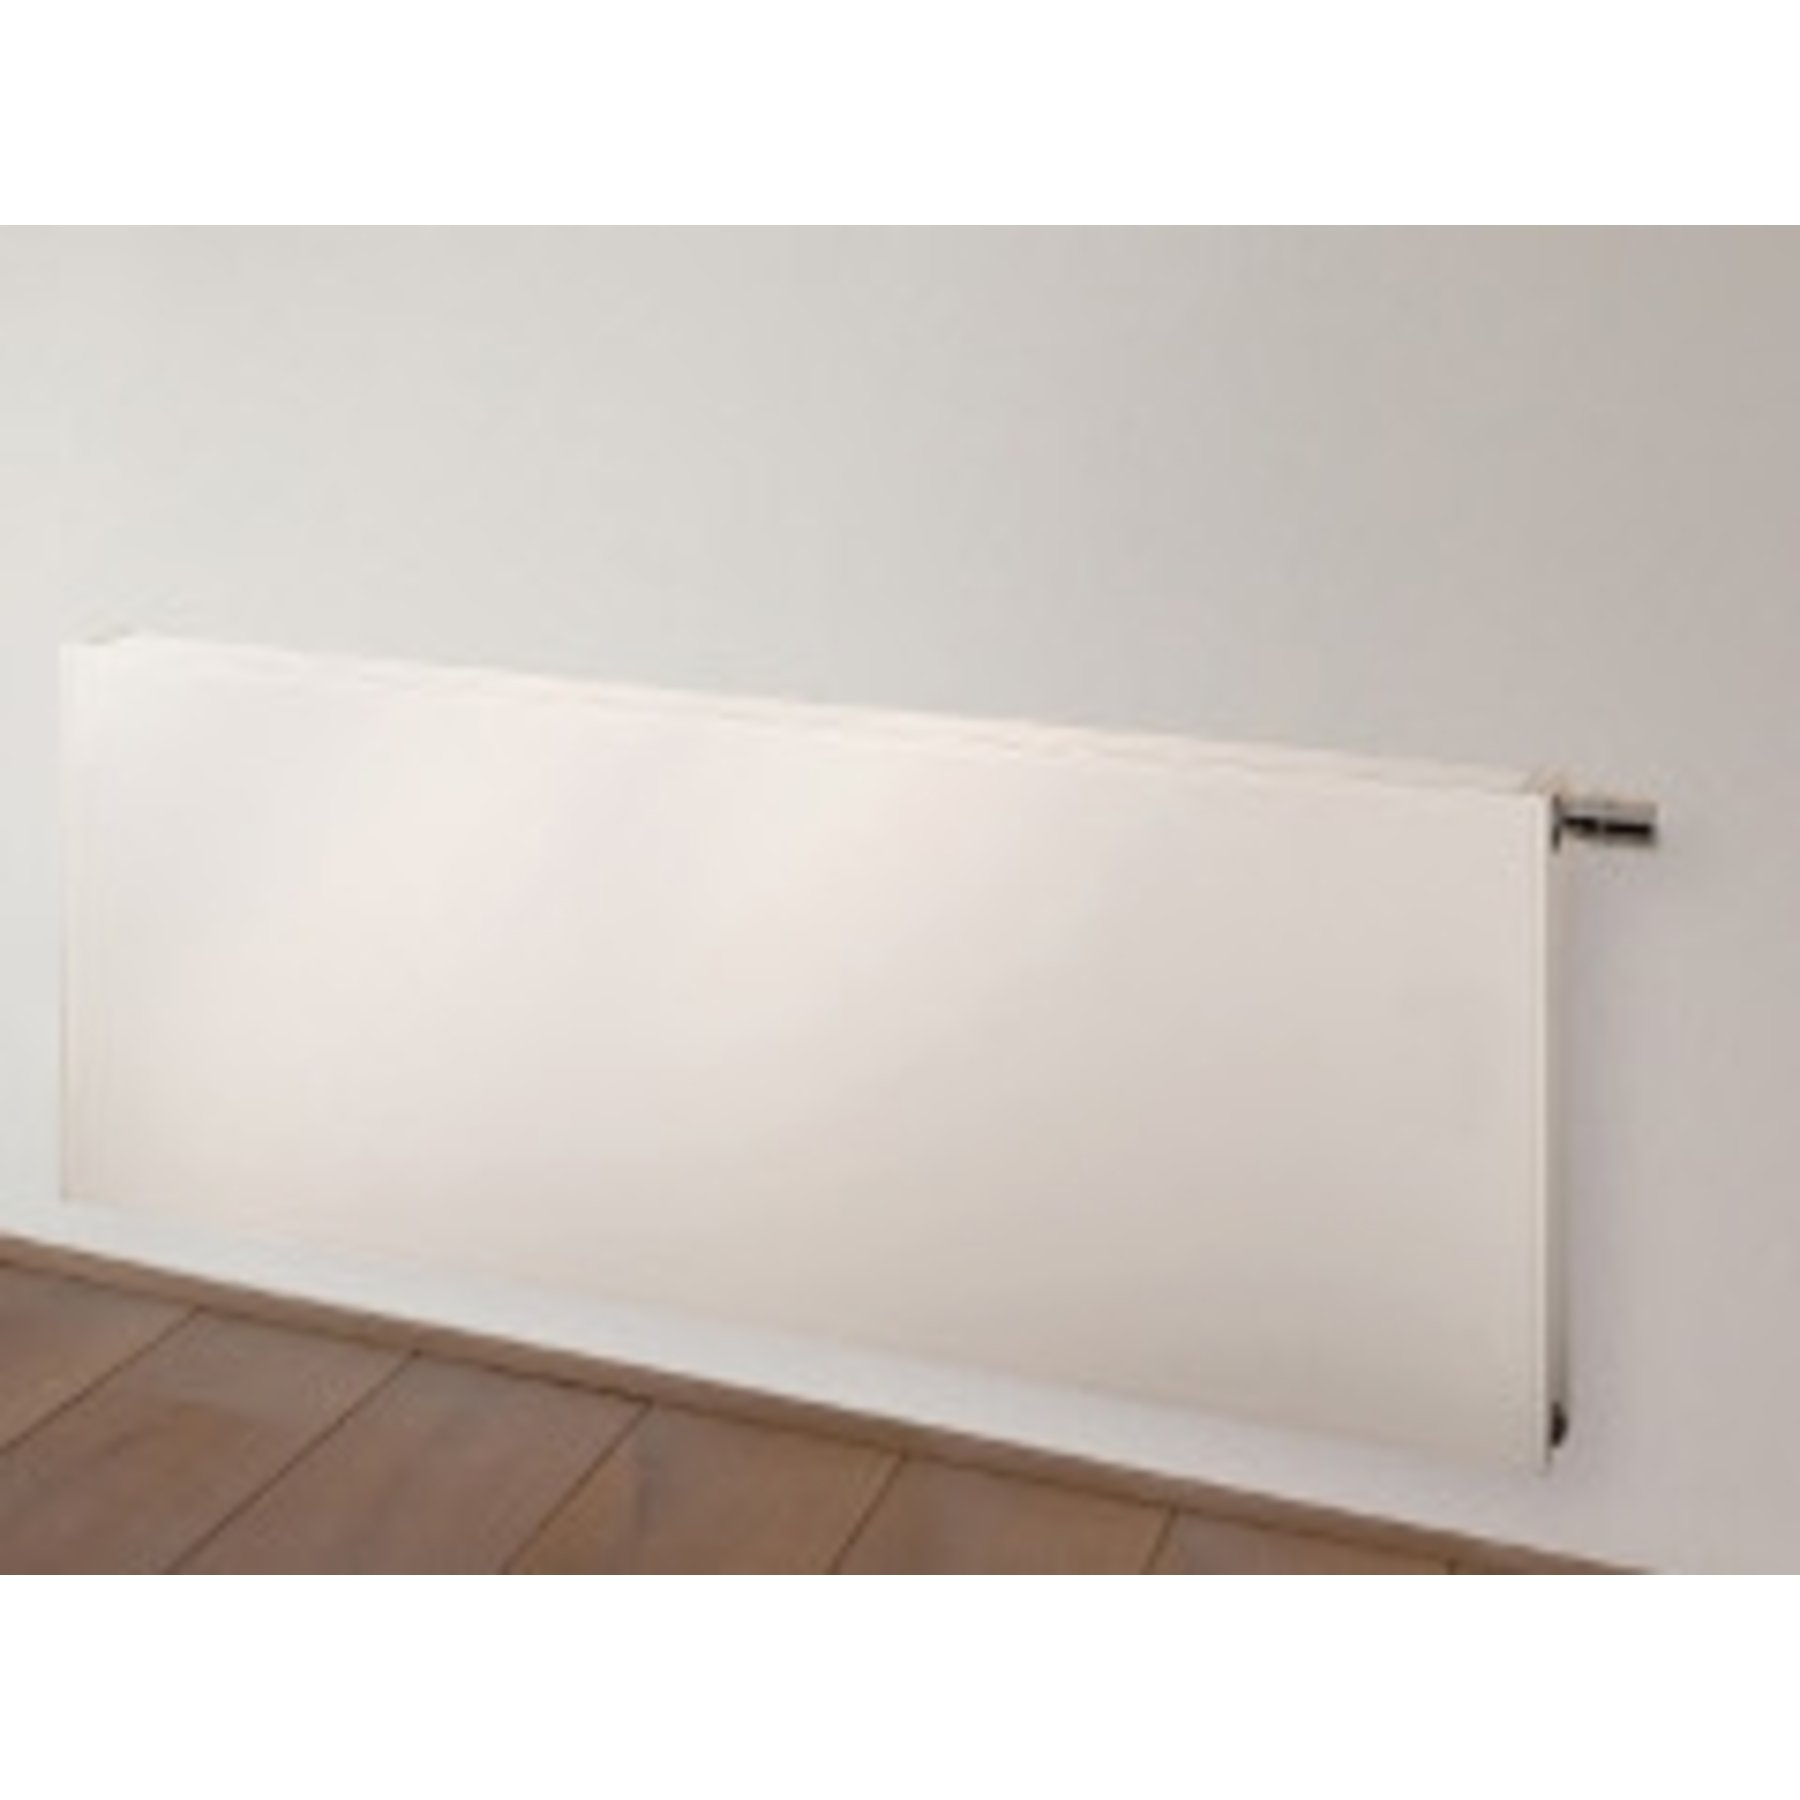 Vasco Flatline Paneelradiator type 21 400x600mm 548W vlak wit structuur (S600)